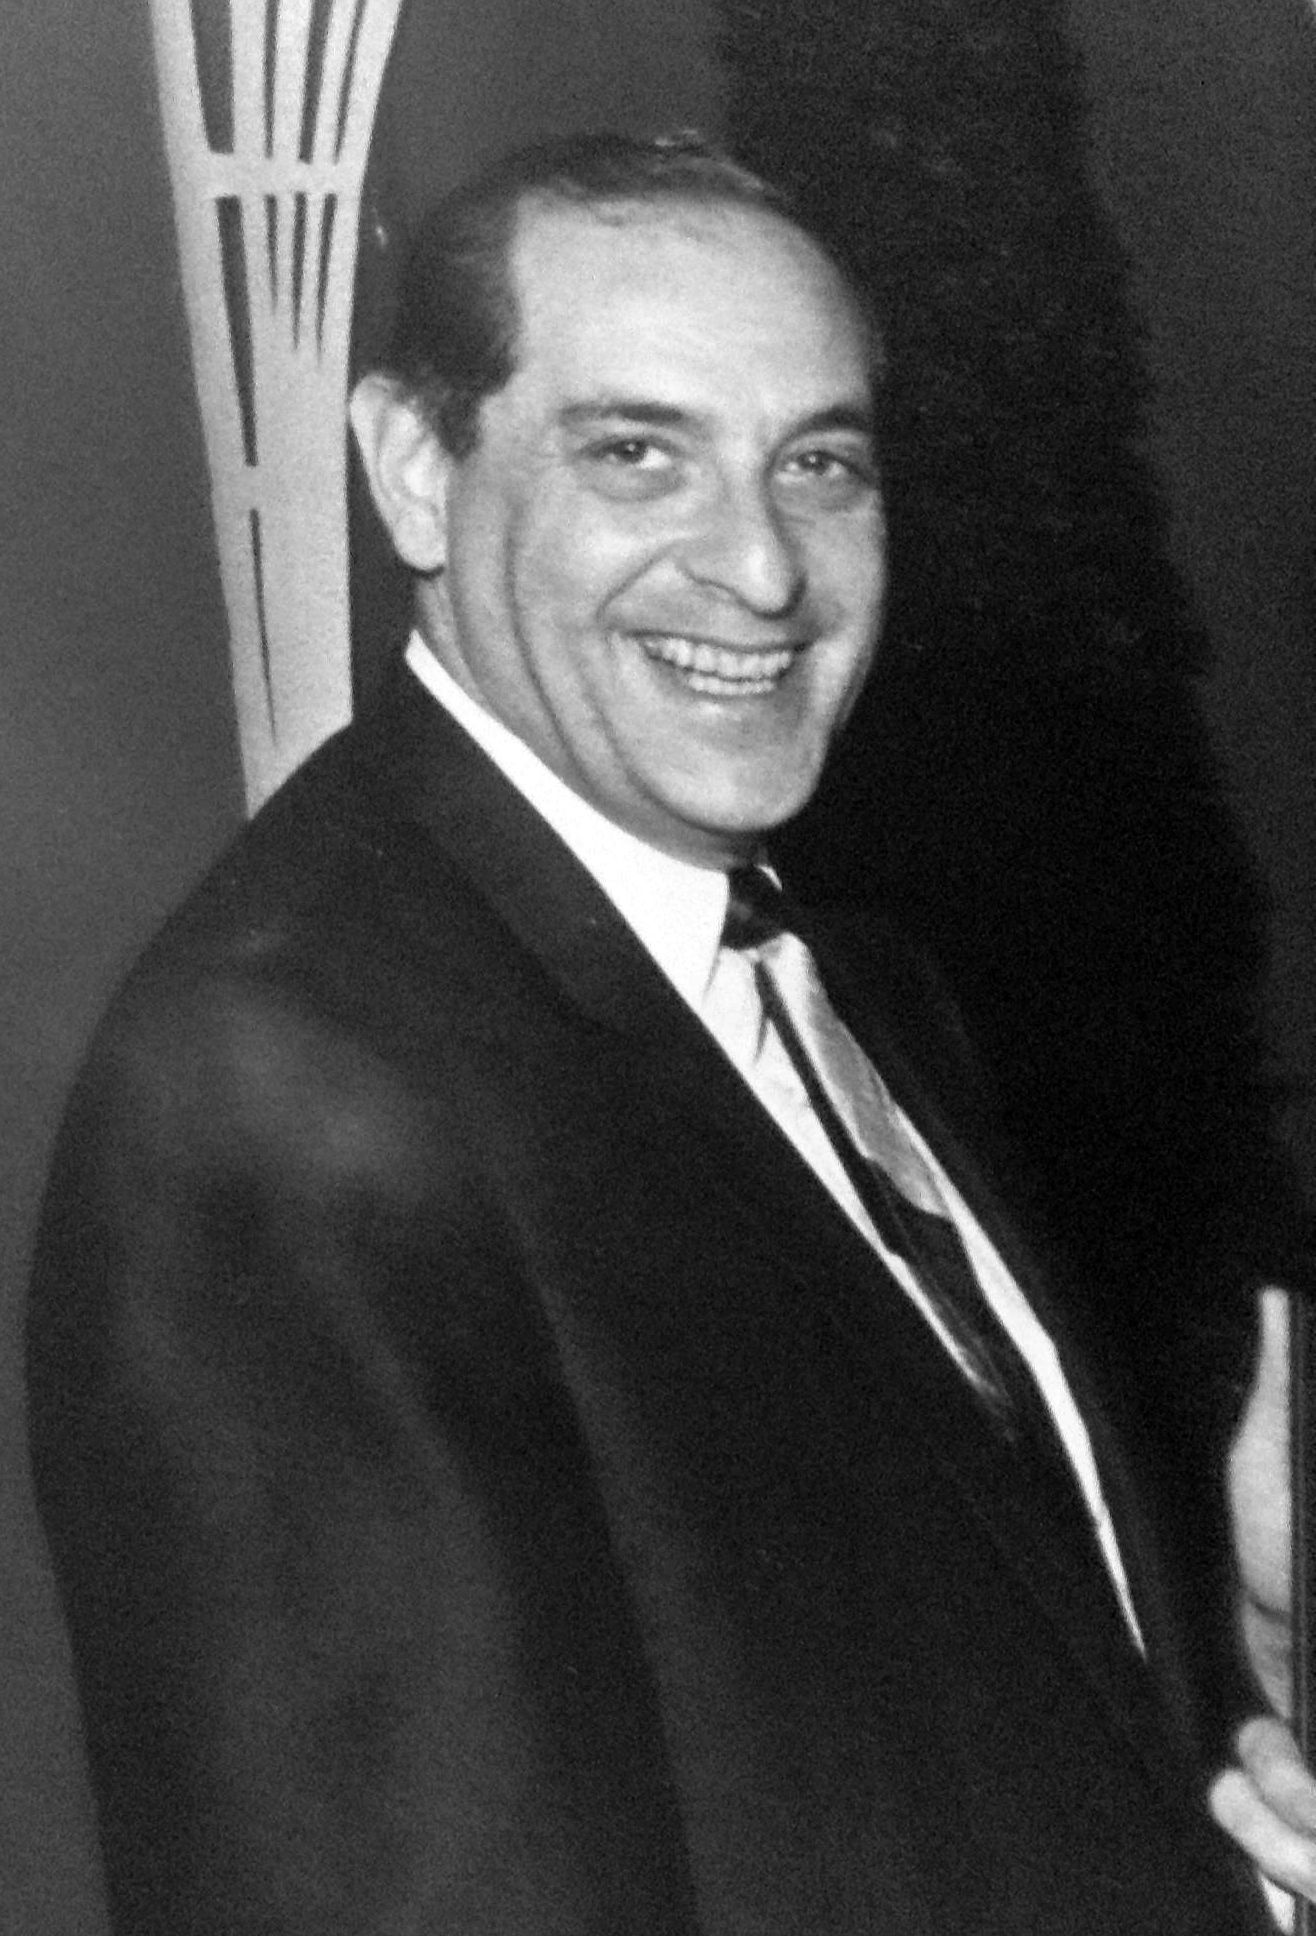 Wendy's father, Jerry Leonard, founder of the Heights Youth Theatre in Cleveland, Ohio.